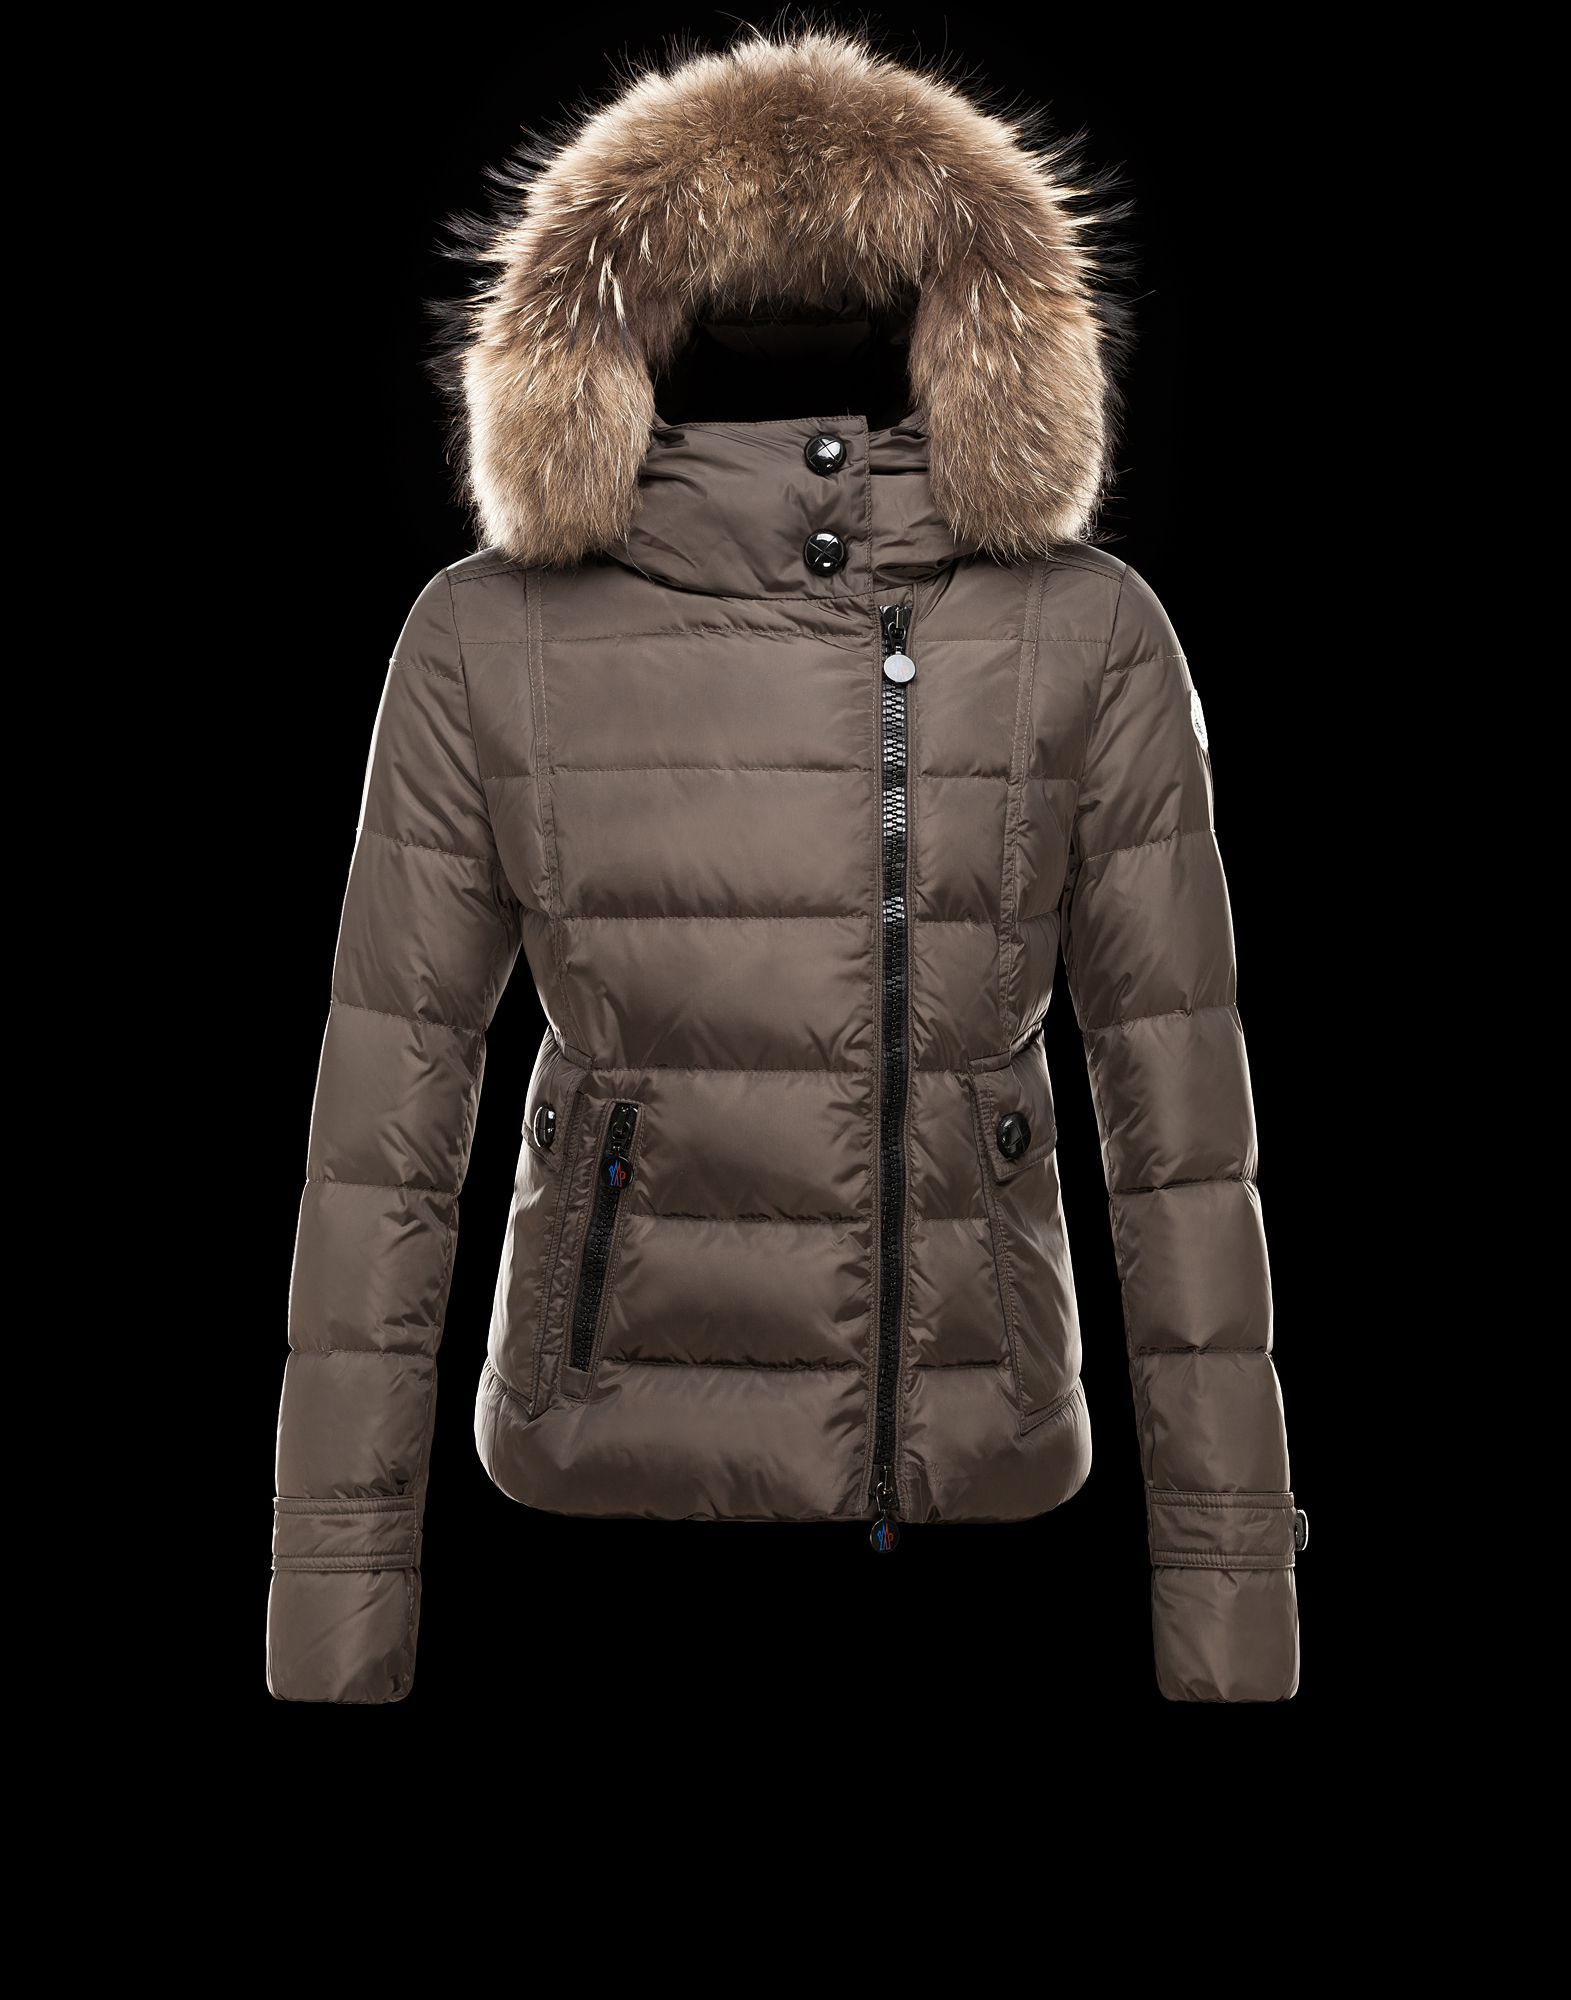 Down Jackets For Womens Sale yQ3VYK